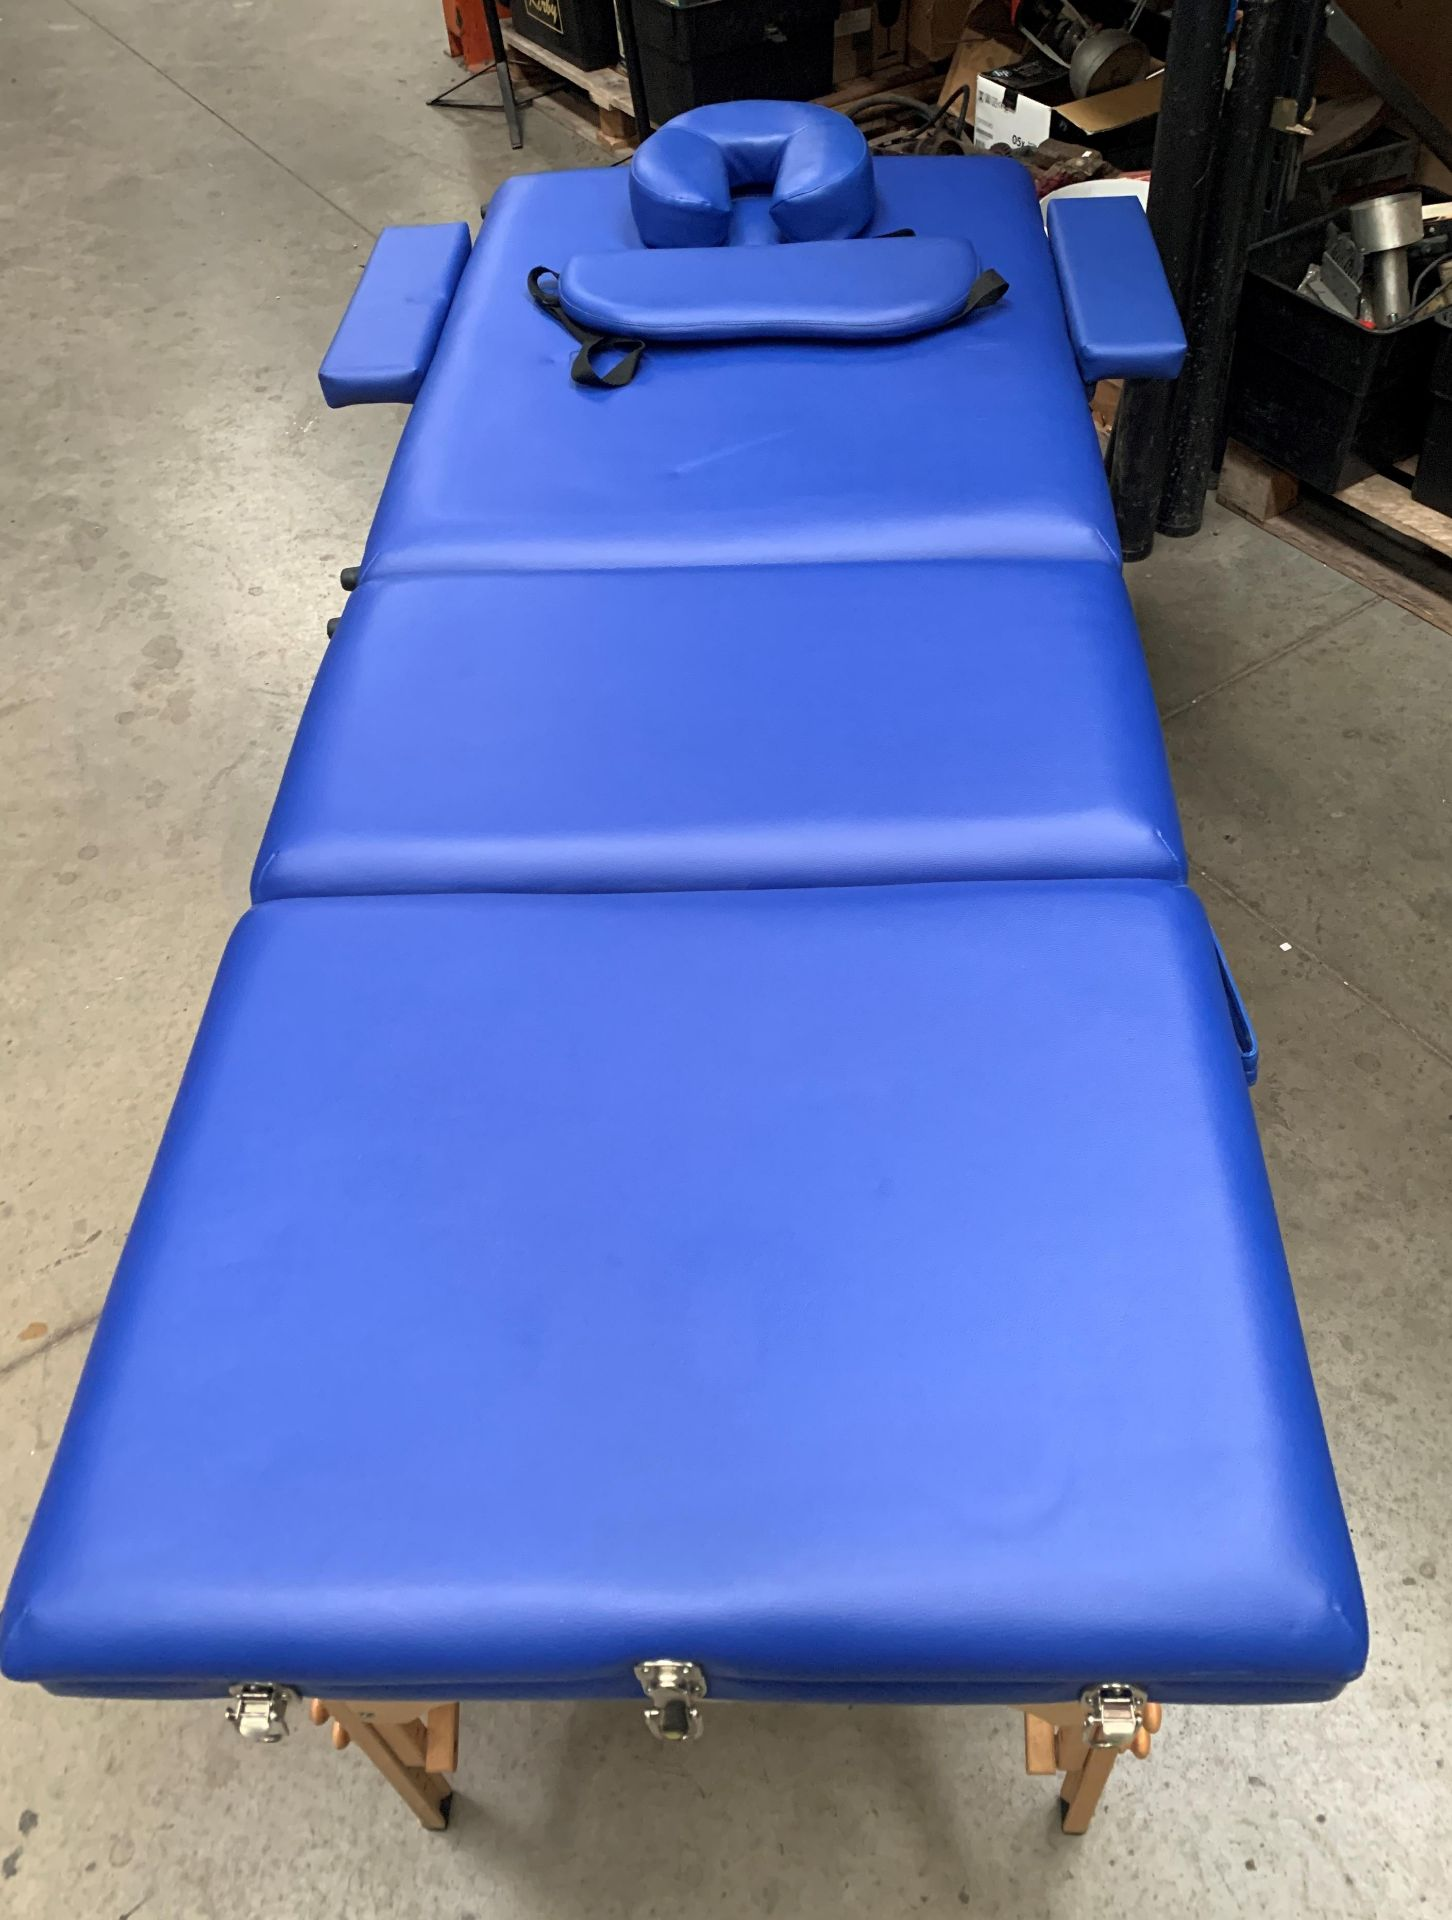 A Healthline Massage Products folding massage bench upholstered in blue PVC complete with carry bag, - Image 3 of 8